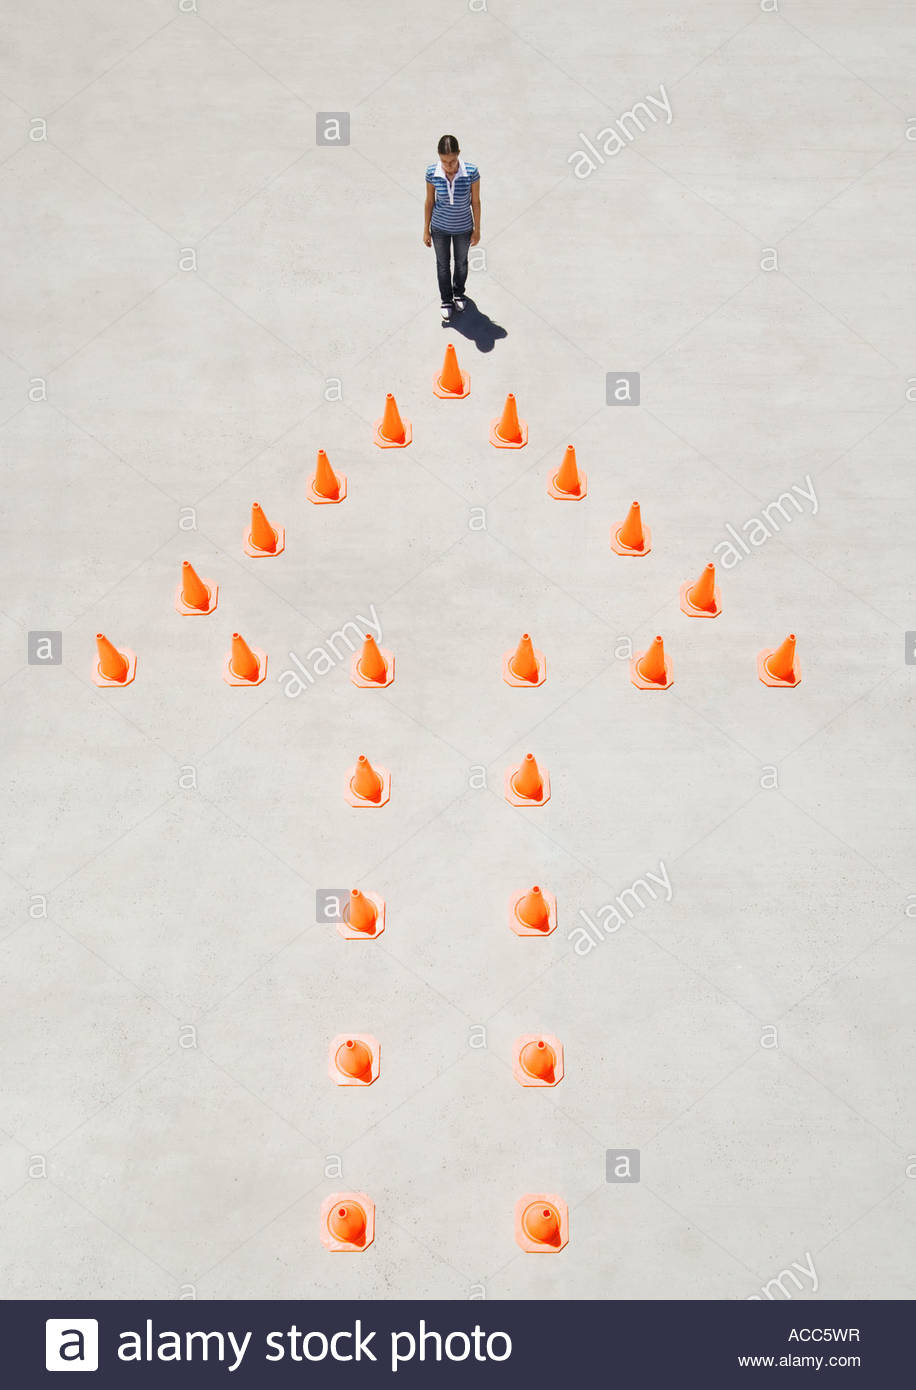 Traffic cones forming arrow with woman at top - Stock Image